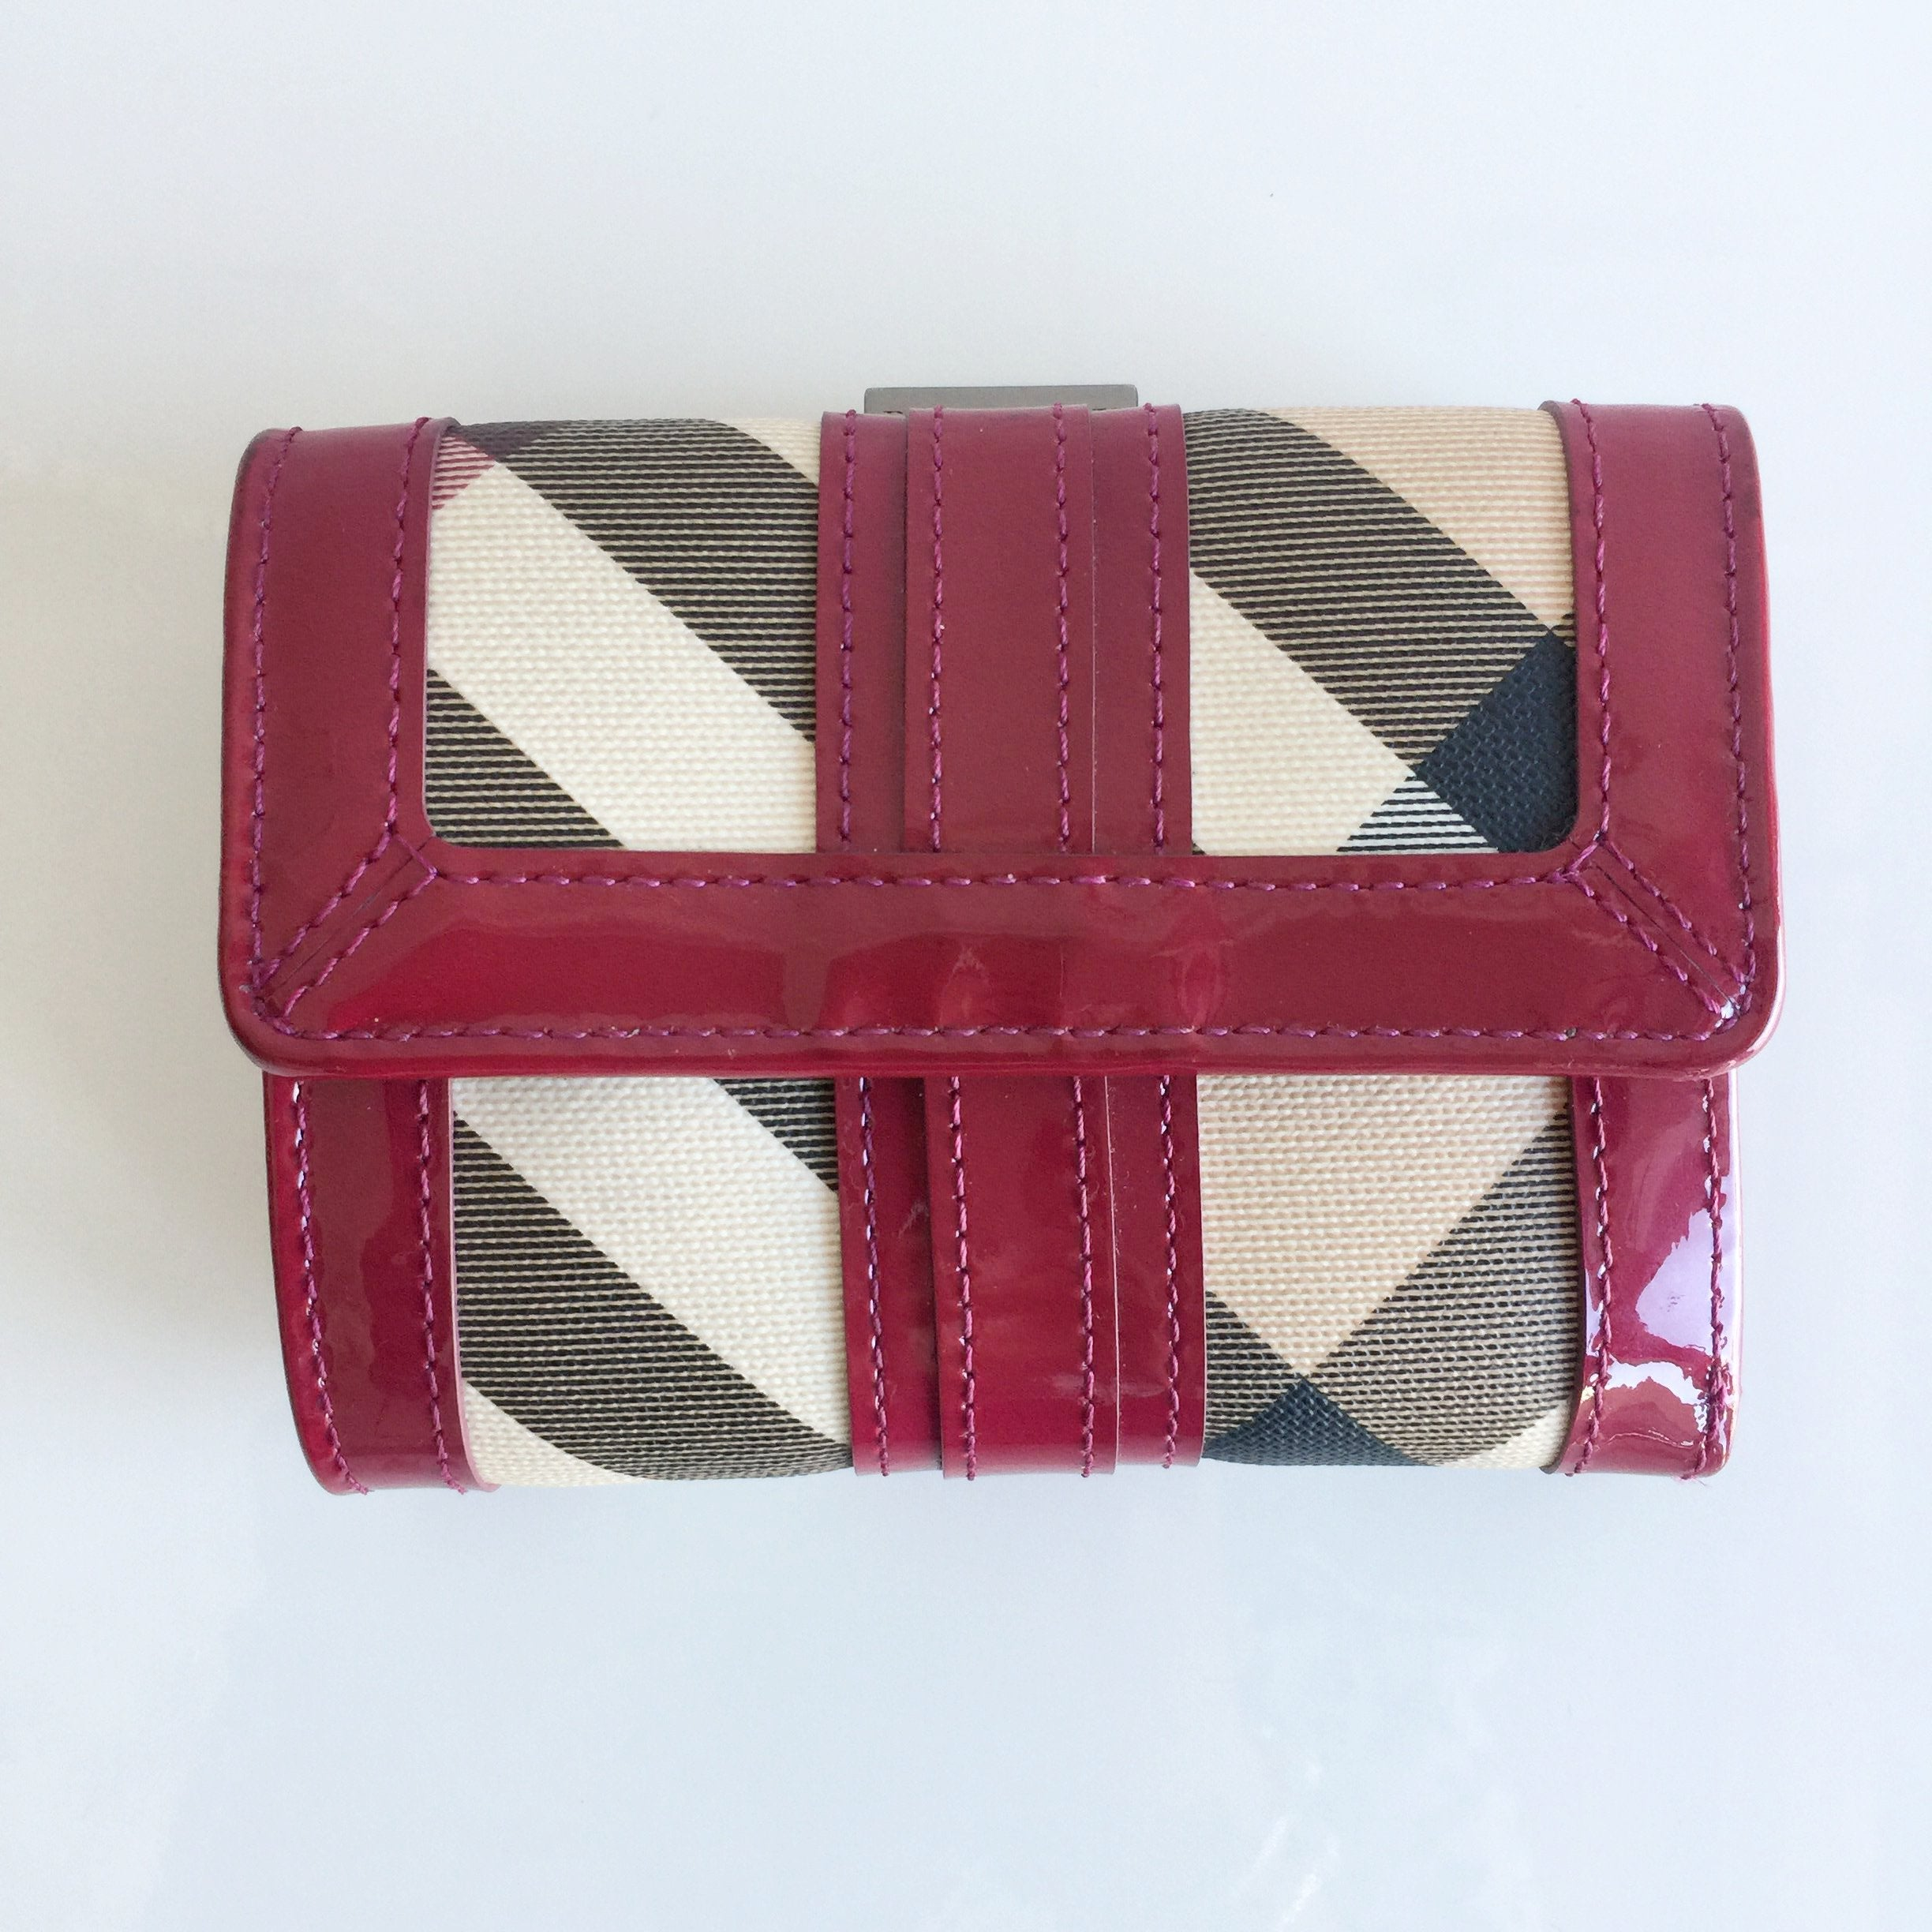 Authentic BURBERRY Novacheck Compact Wallet